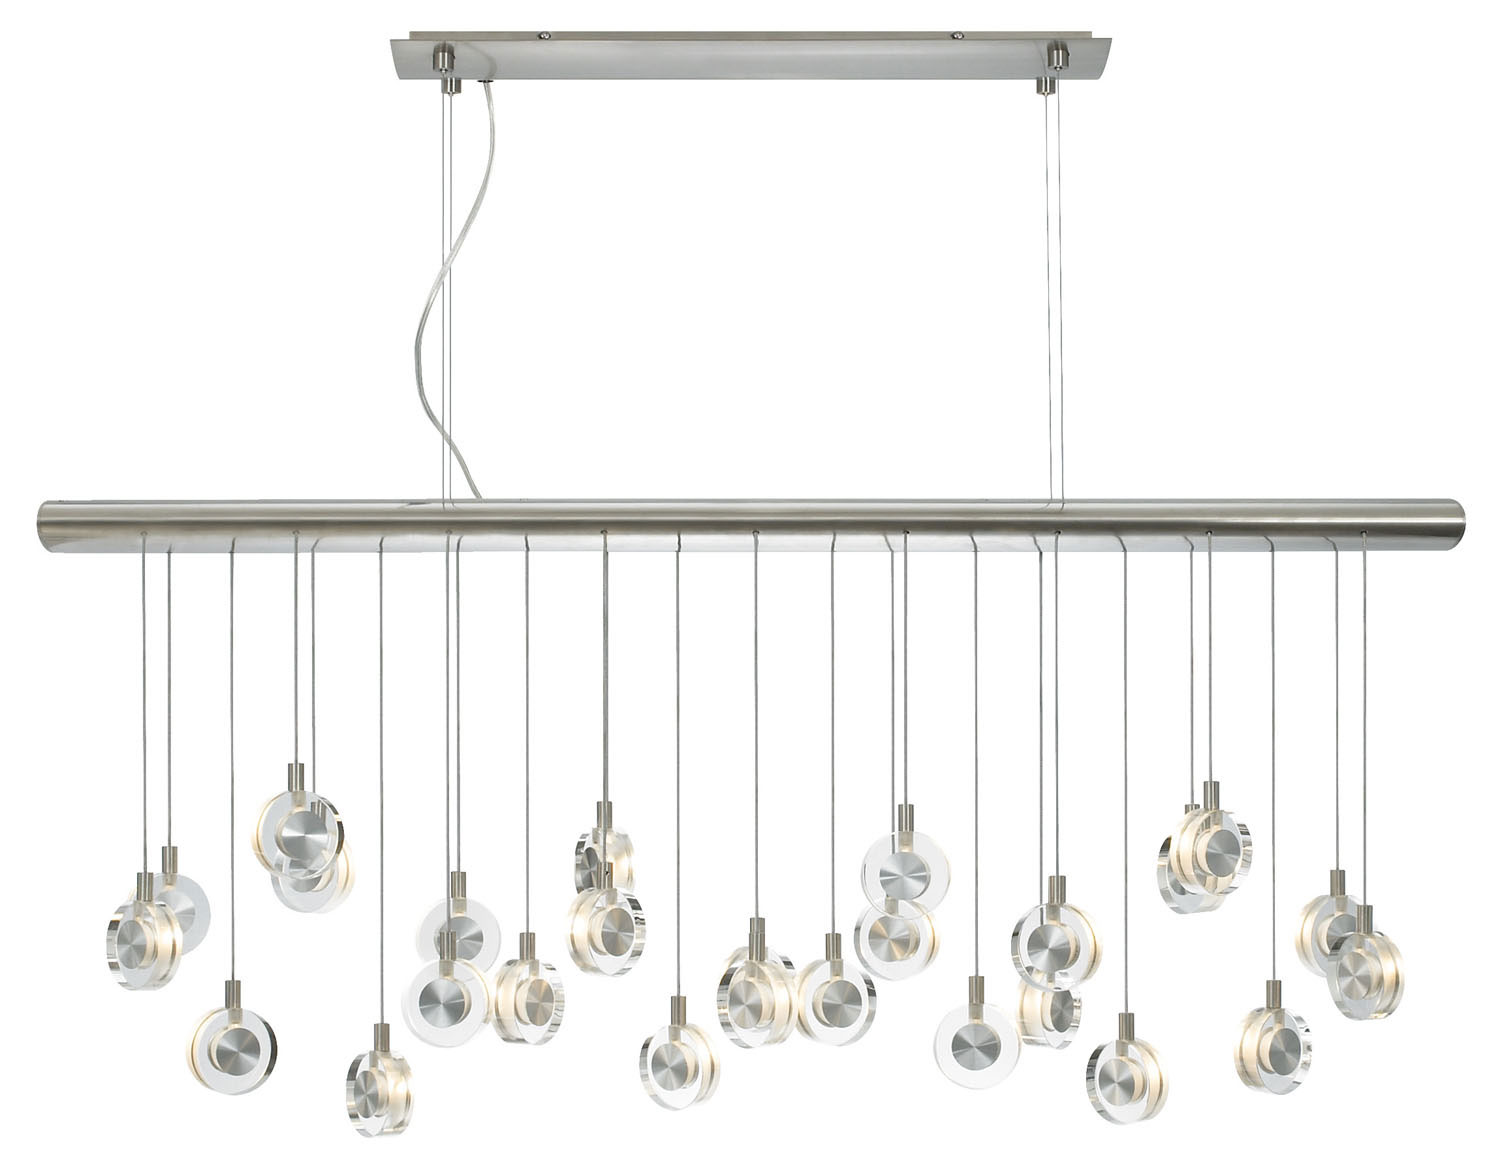 26 Light Chandelier from the Bling collection by LBL Lighting HS524CRSC76